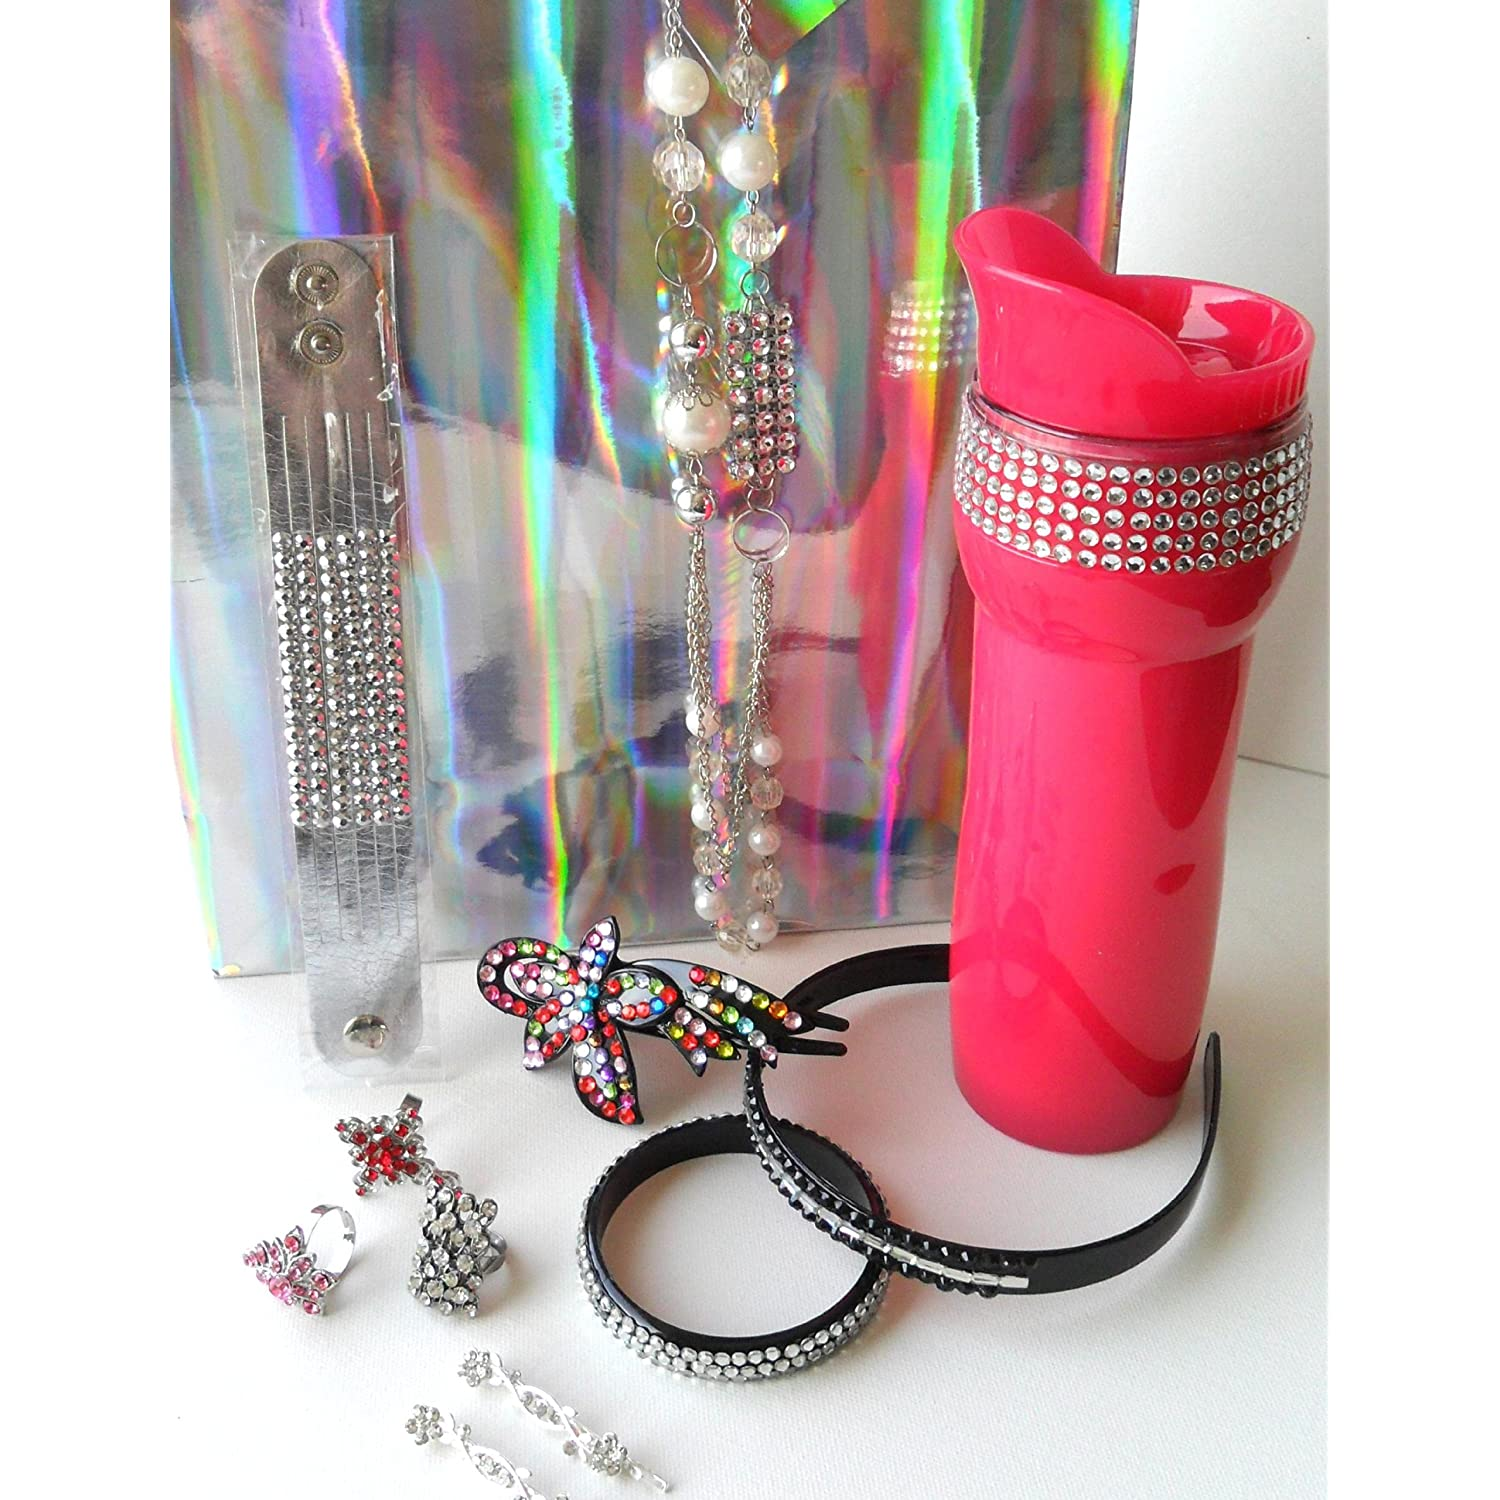 Rhinestone Bling Bling Gift Set 11 Pieces with Hot Pink Travel Coffee Tea Mug,Bracelet, Necklace & Earrings,Bling Rings